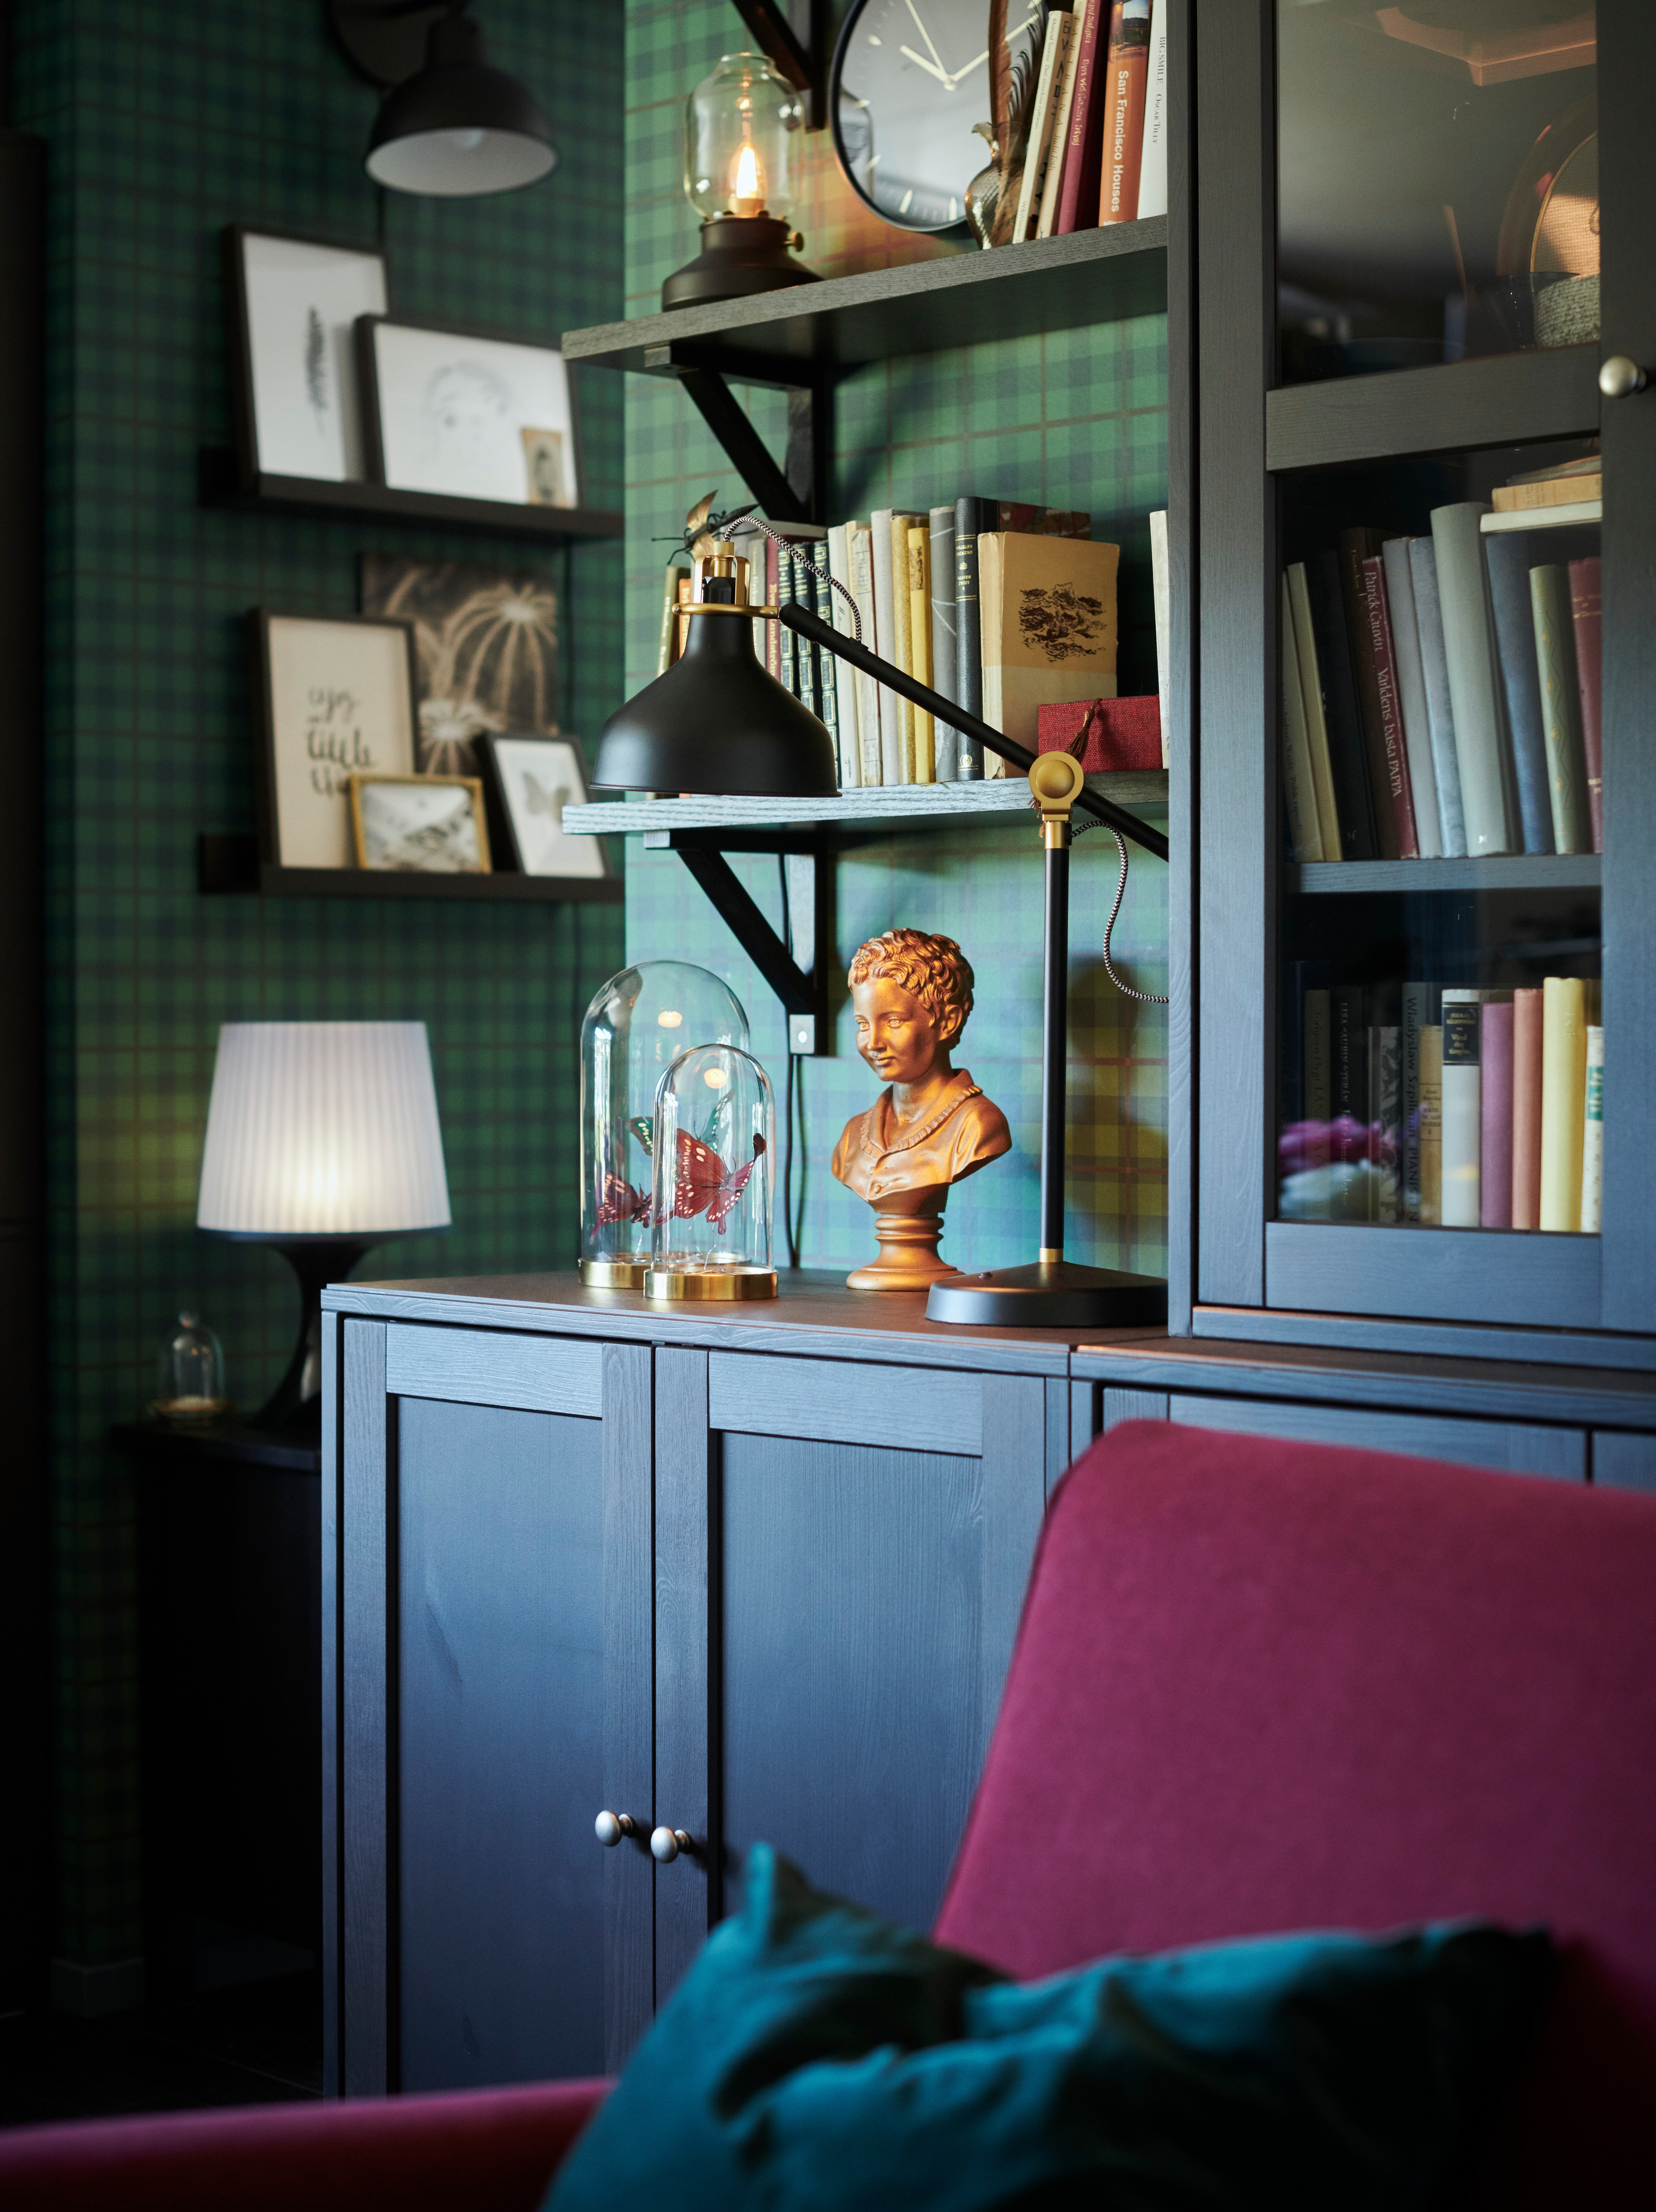 A black RANARP work lamp with an adjustable head and arm is on a cabinet, by an armchair and some shelves holding books.